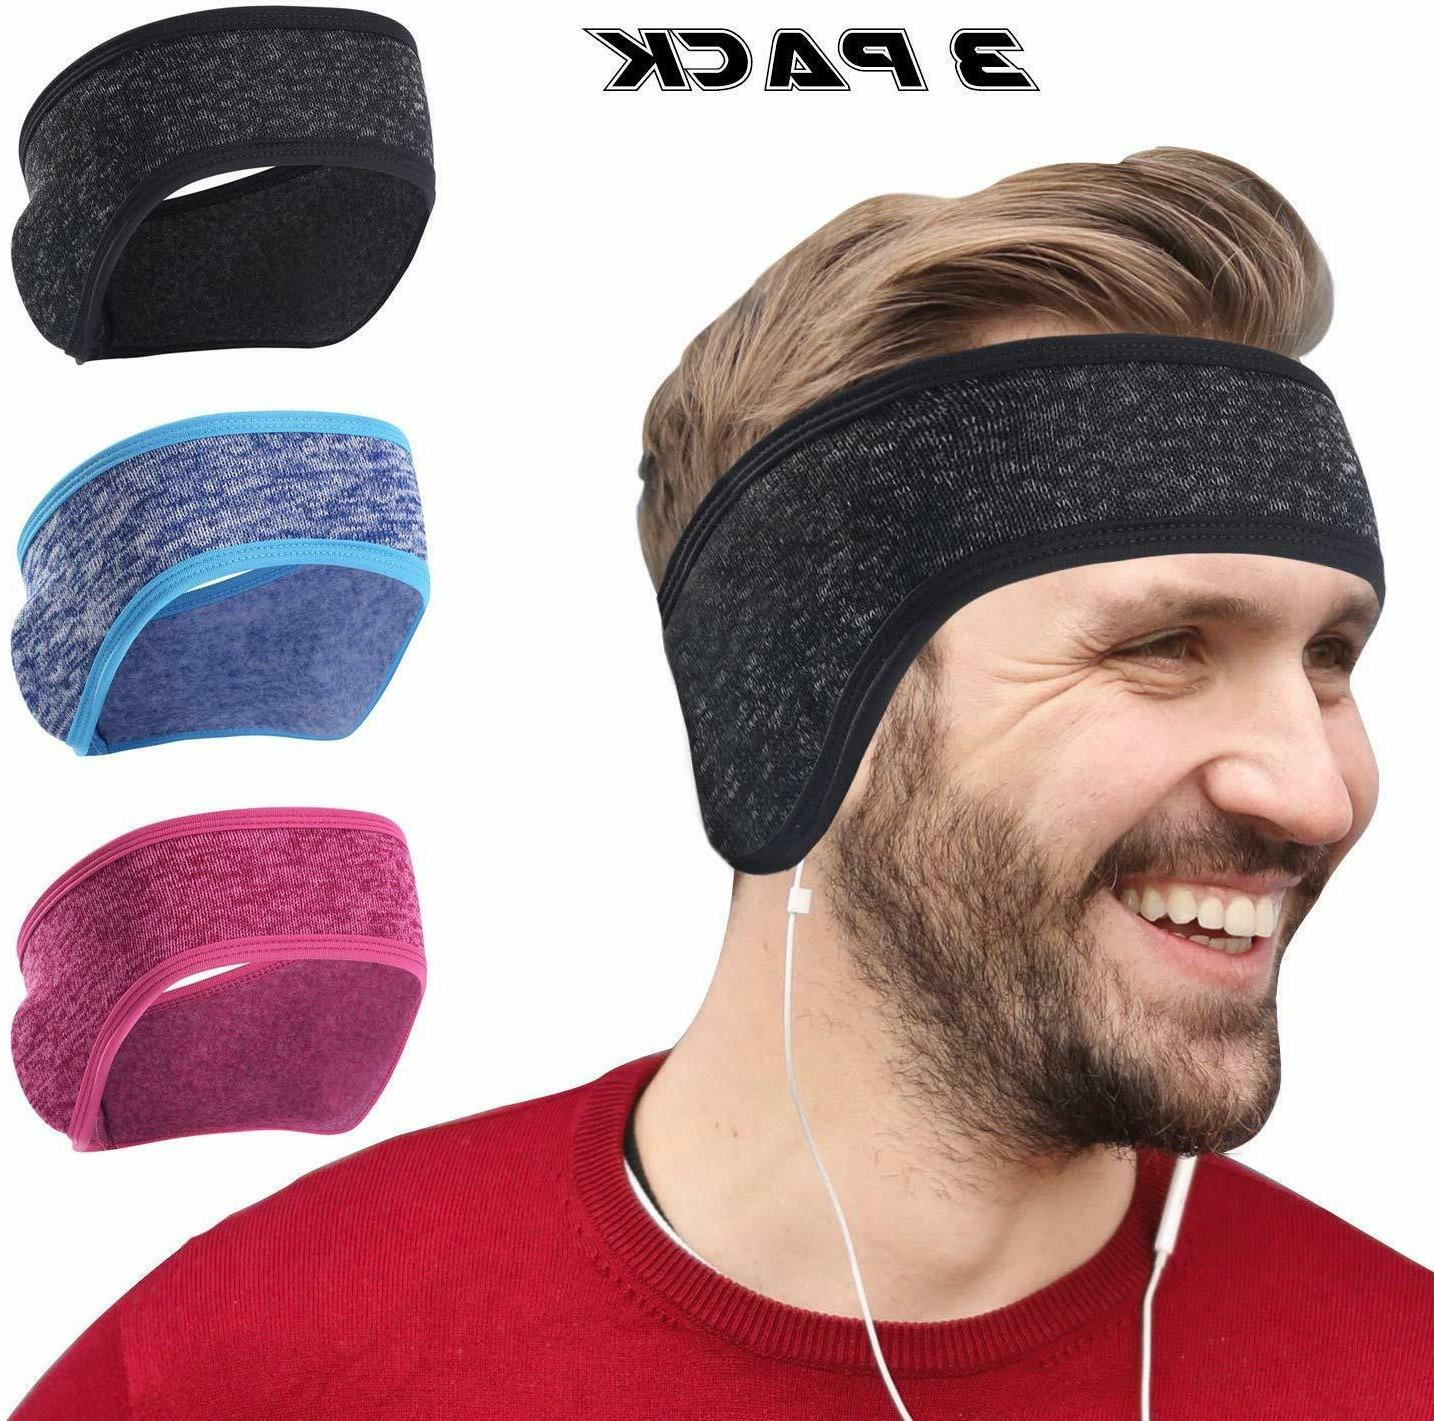 ear warmers cover headband winter sports headwrap